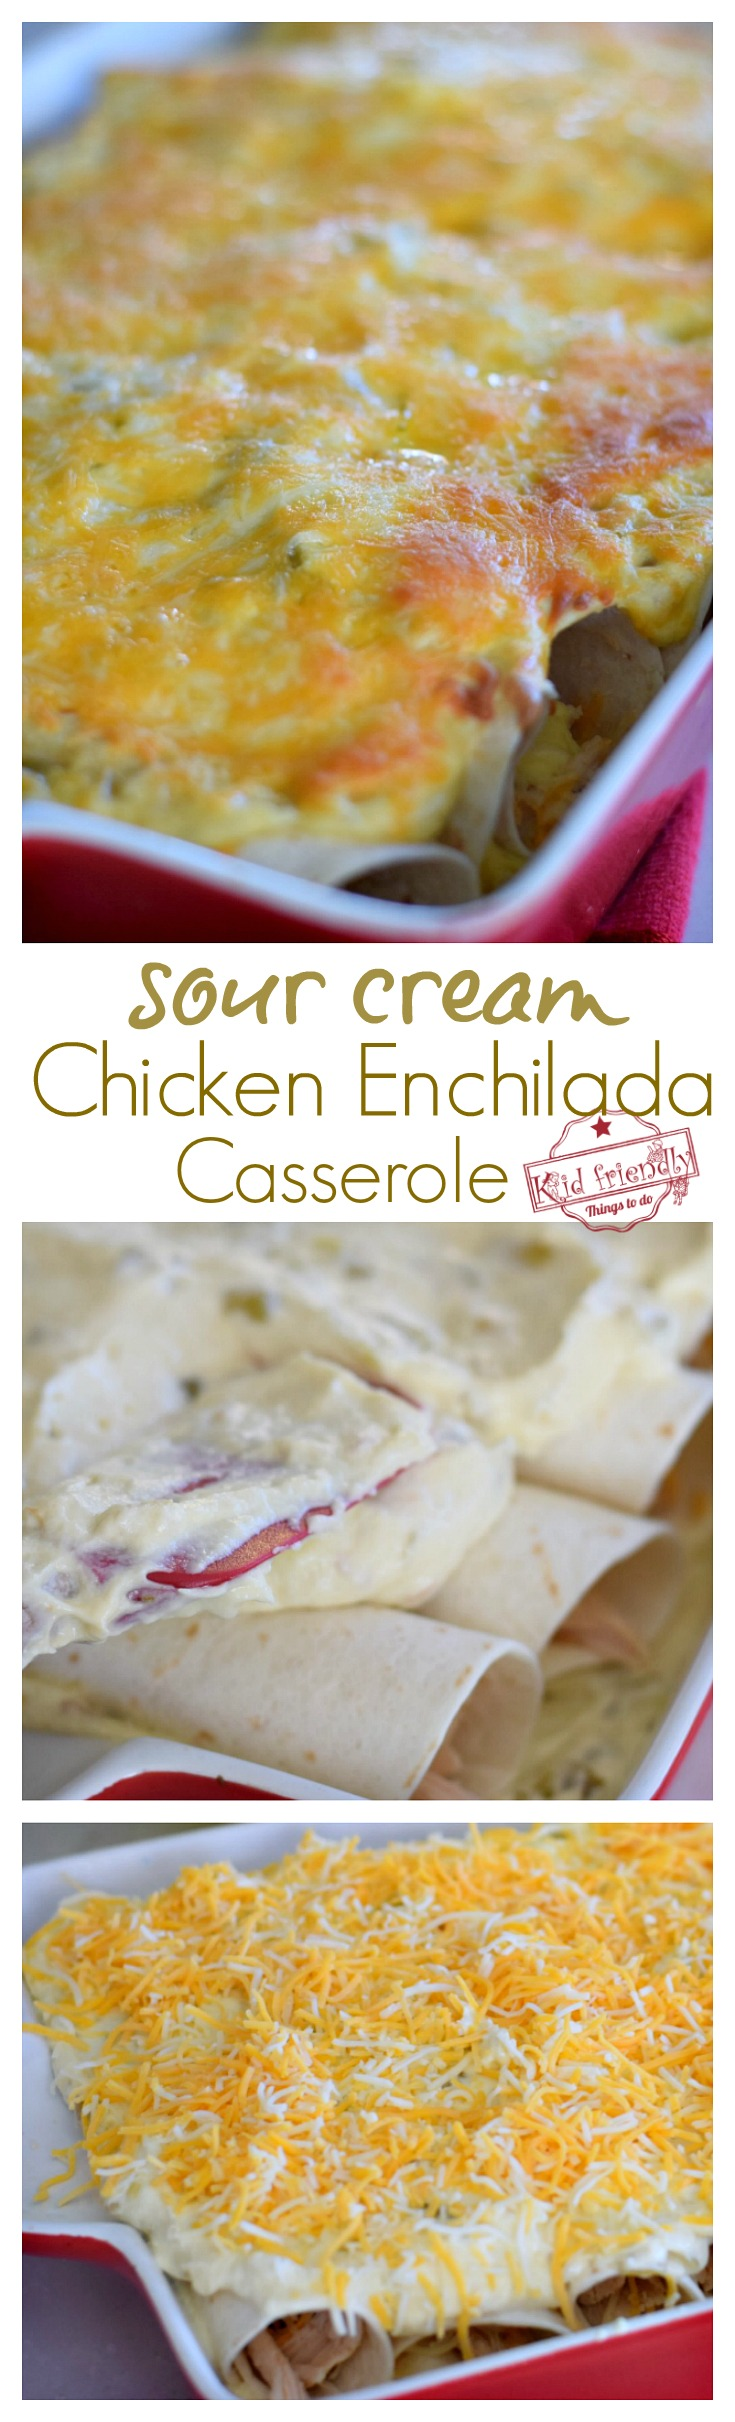 Easy Sour Cream Chicken Enchilada Casserole Recipe - Just Like Mom Used To Make - Delicious, classic casserole the whole family will love . Leftovers are even better! www.kidfriendlythingstodo.com